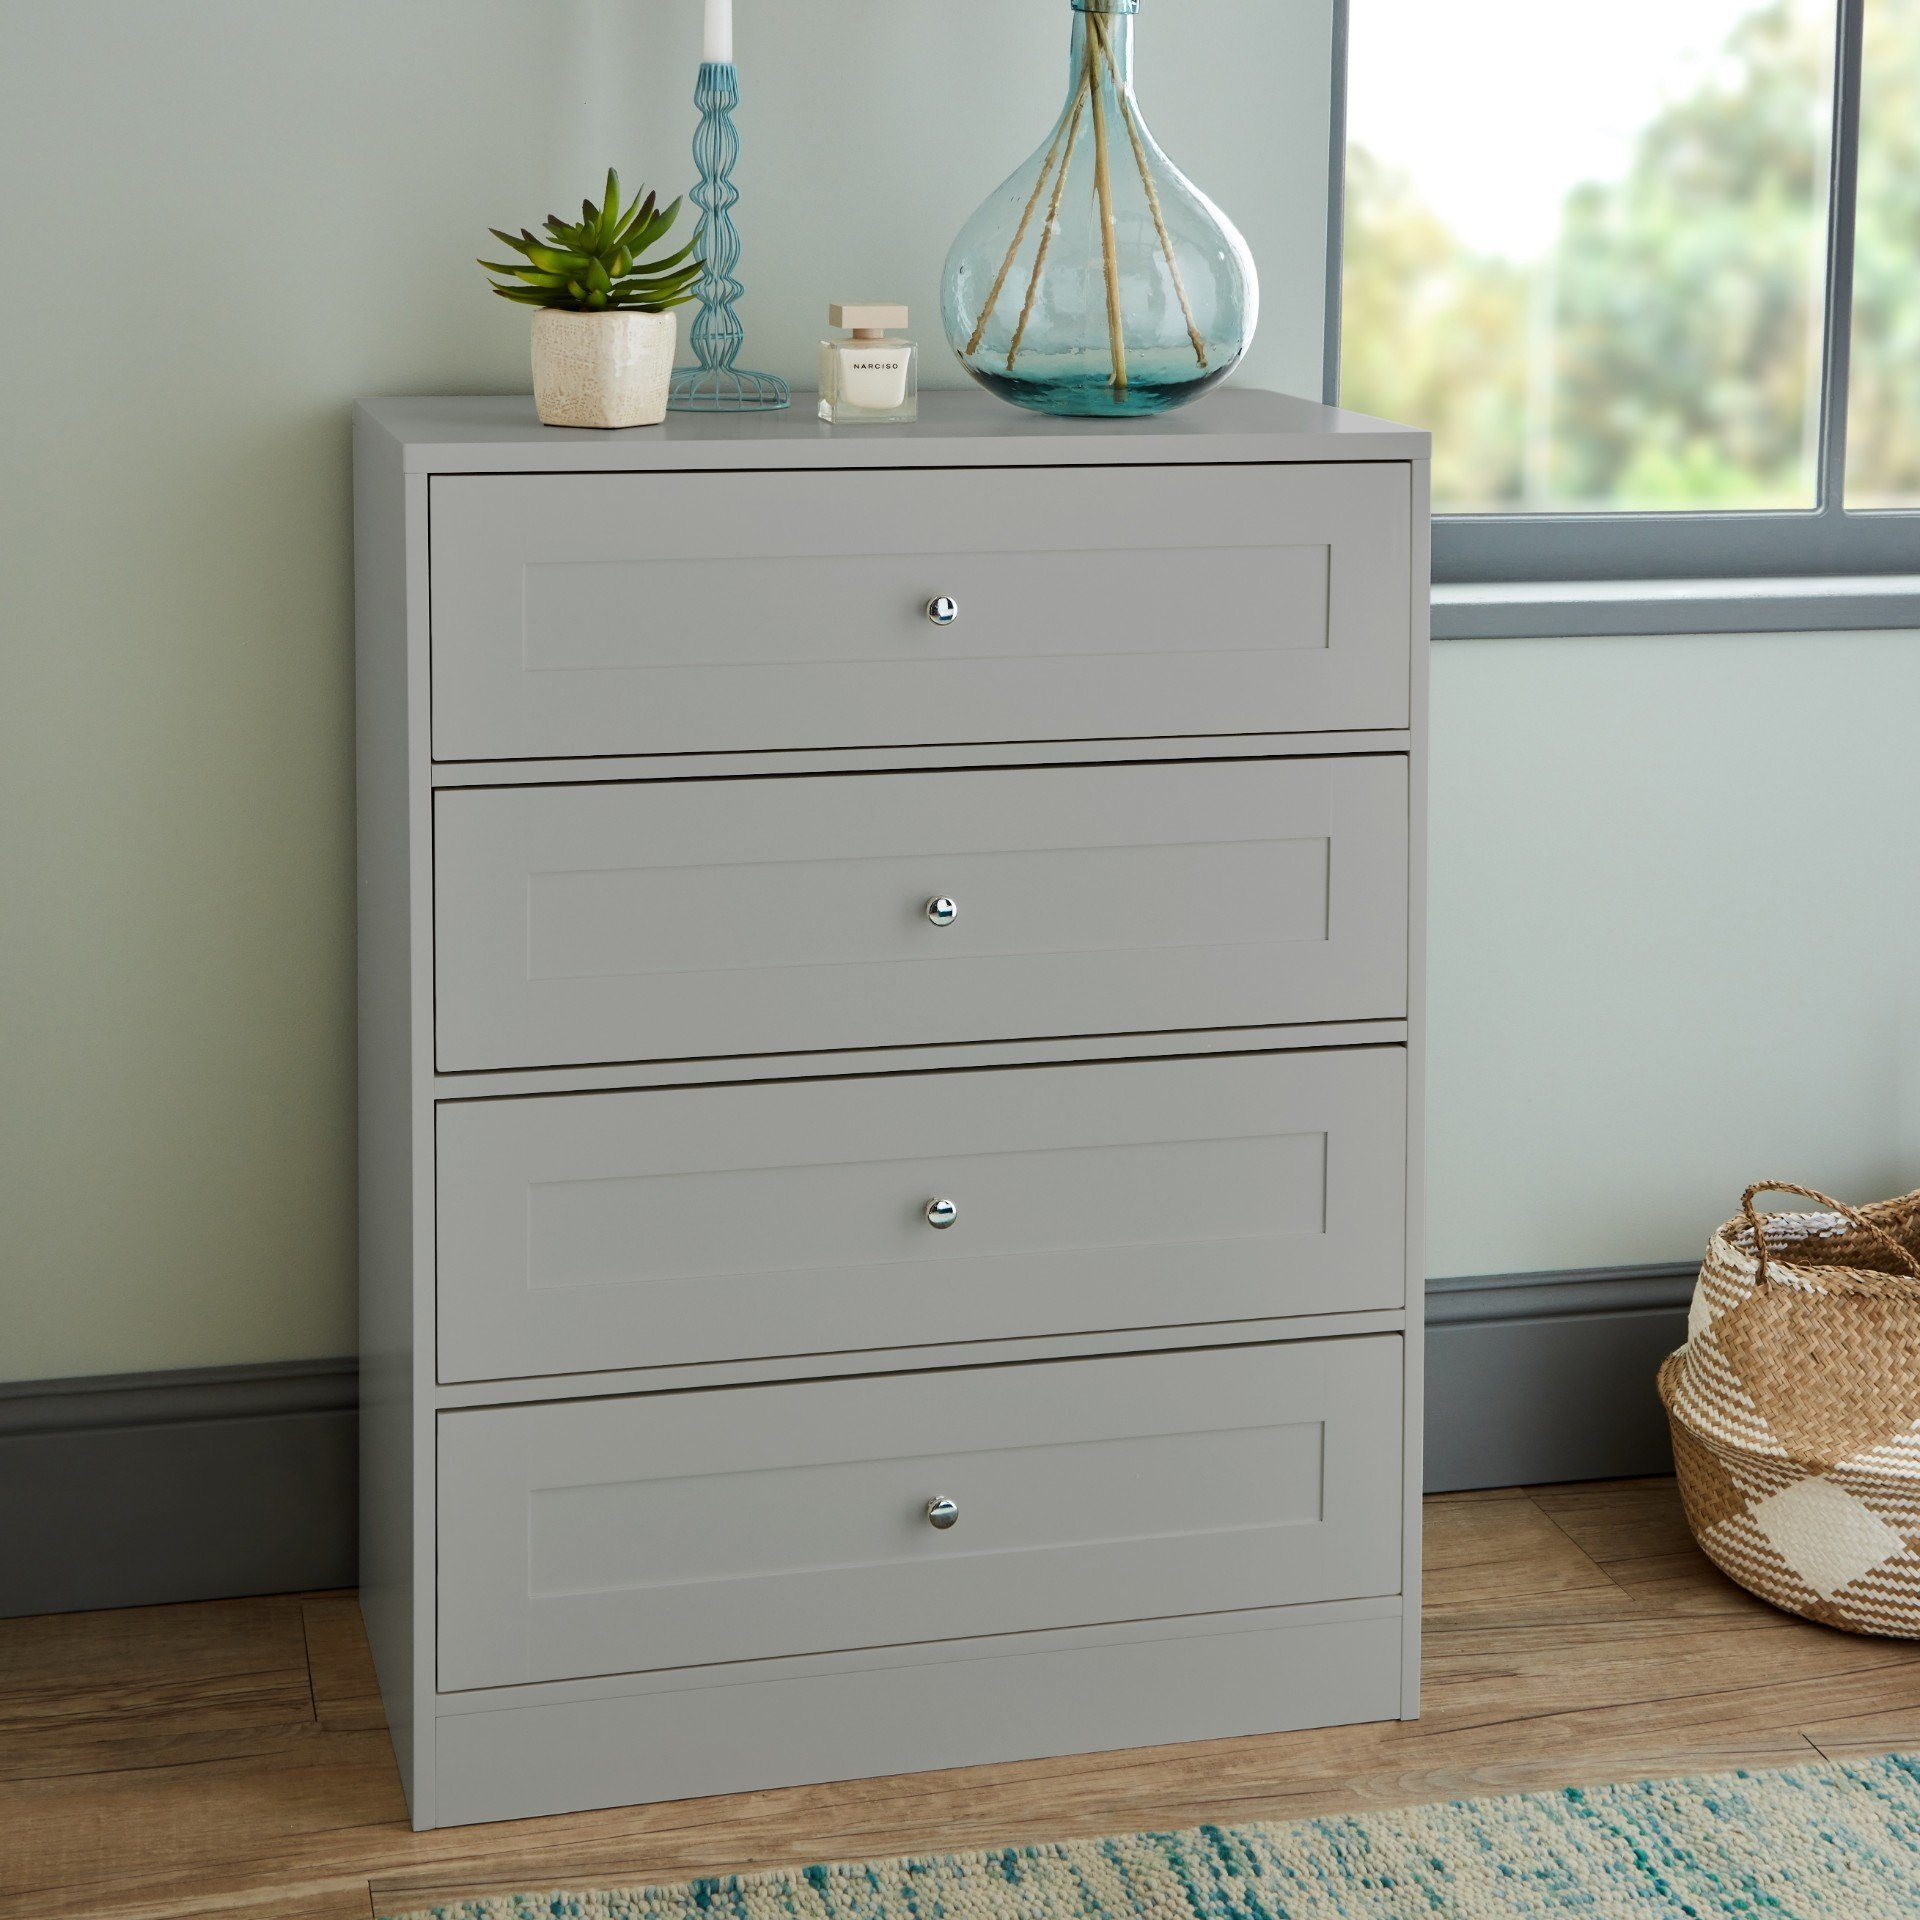 Stevie 4 Drawer Chest of Drawers Grey - Laura James